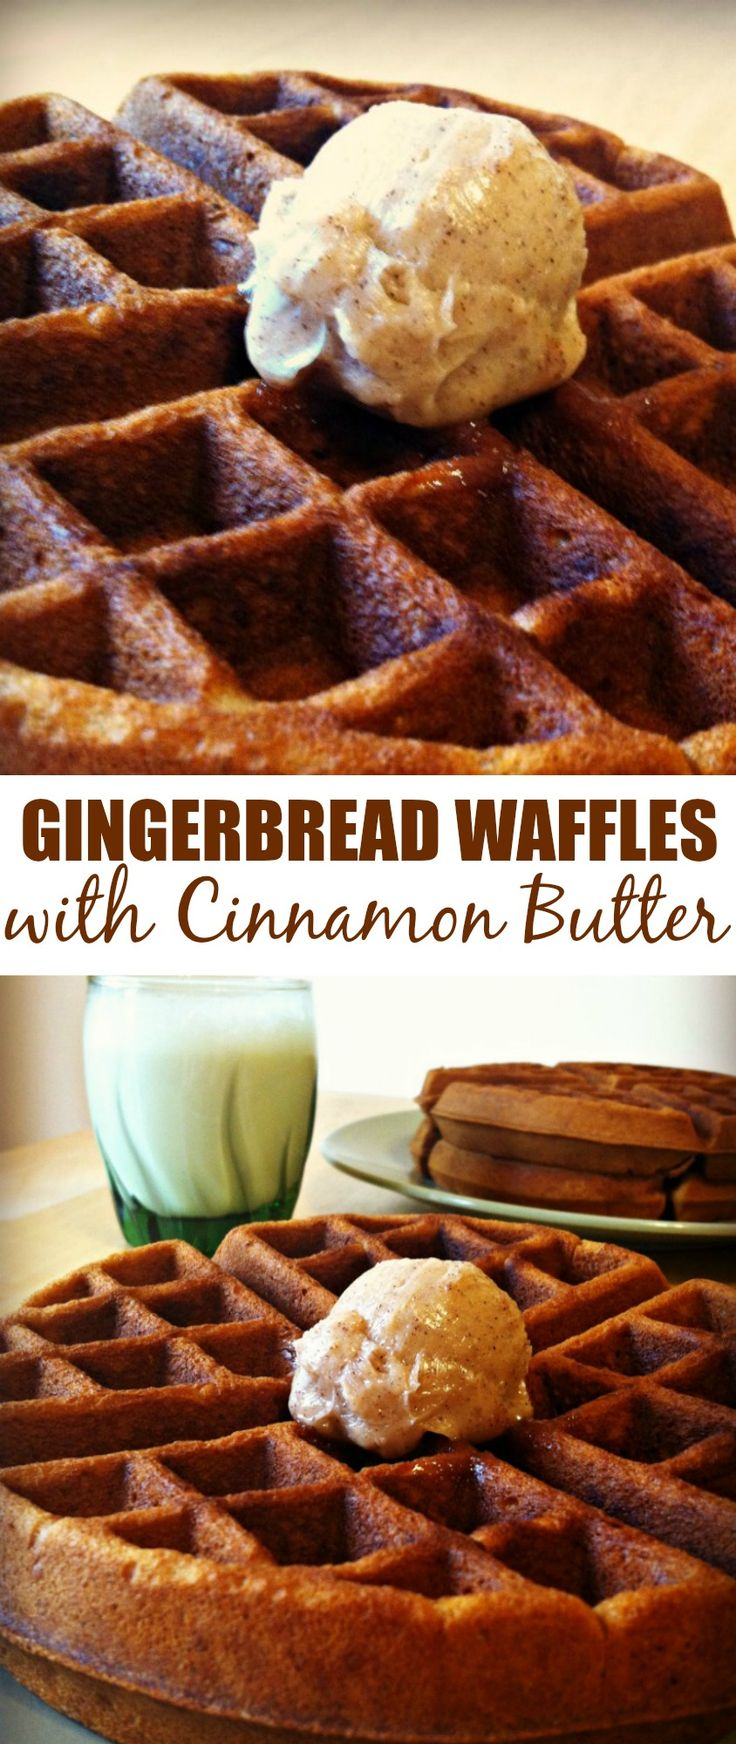 These Gingerbread Waffles with Cinnamon Butter are so amazing and delicious. My family loves to eat them for breakfast on Christmas Day!